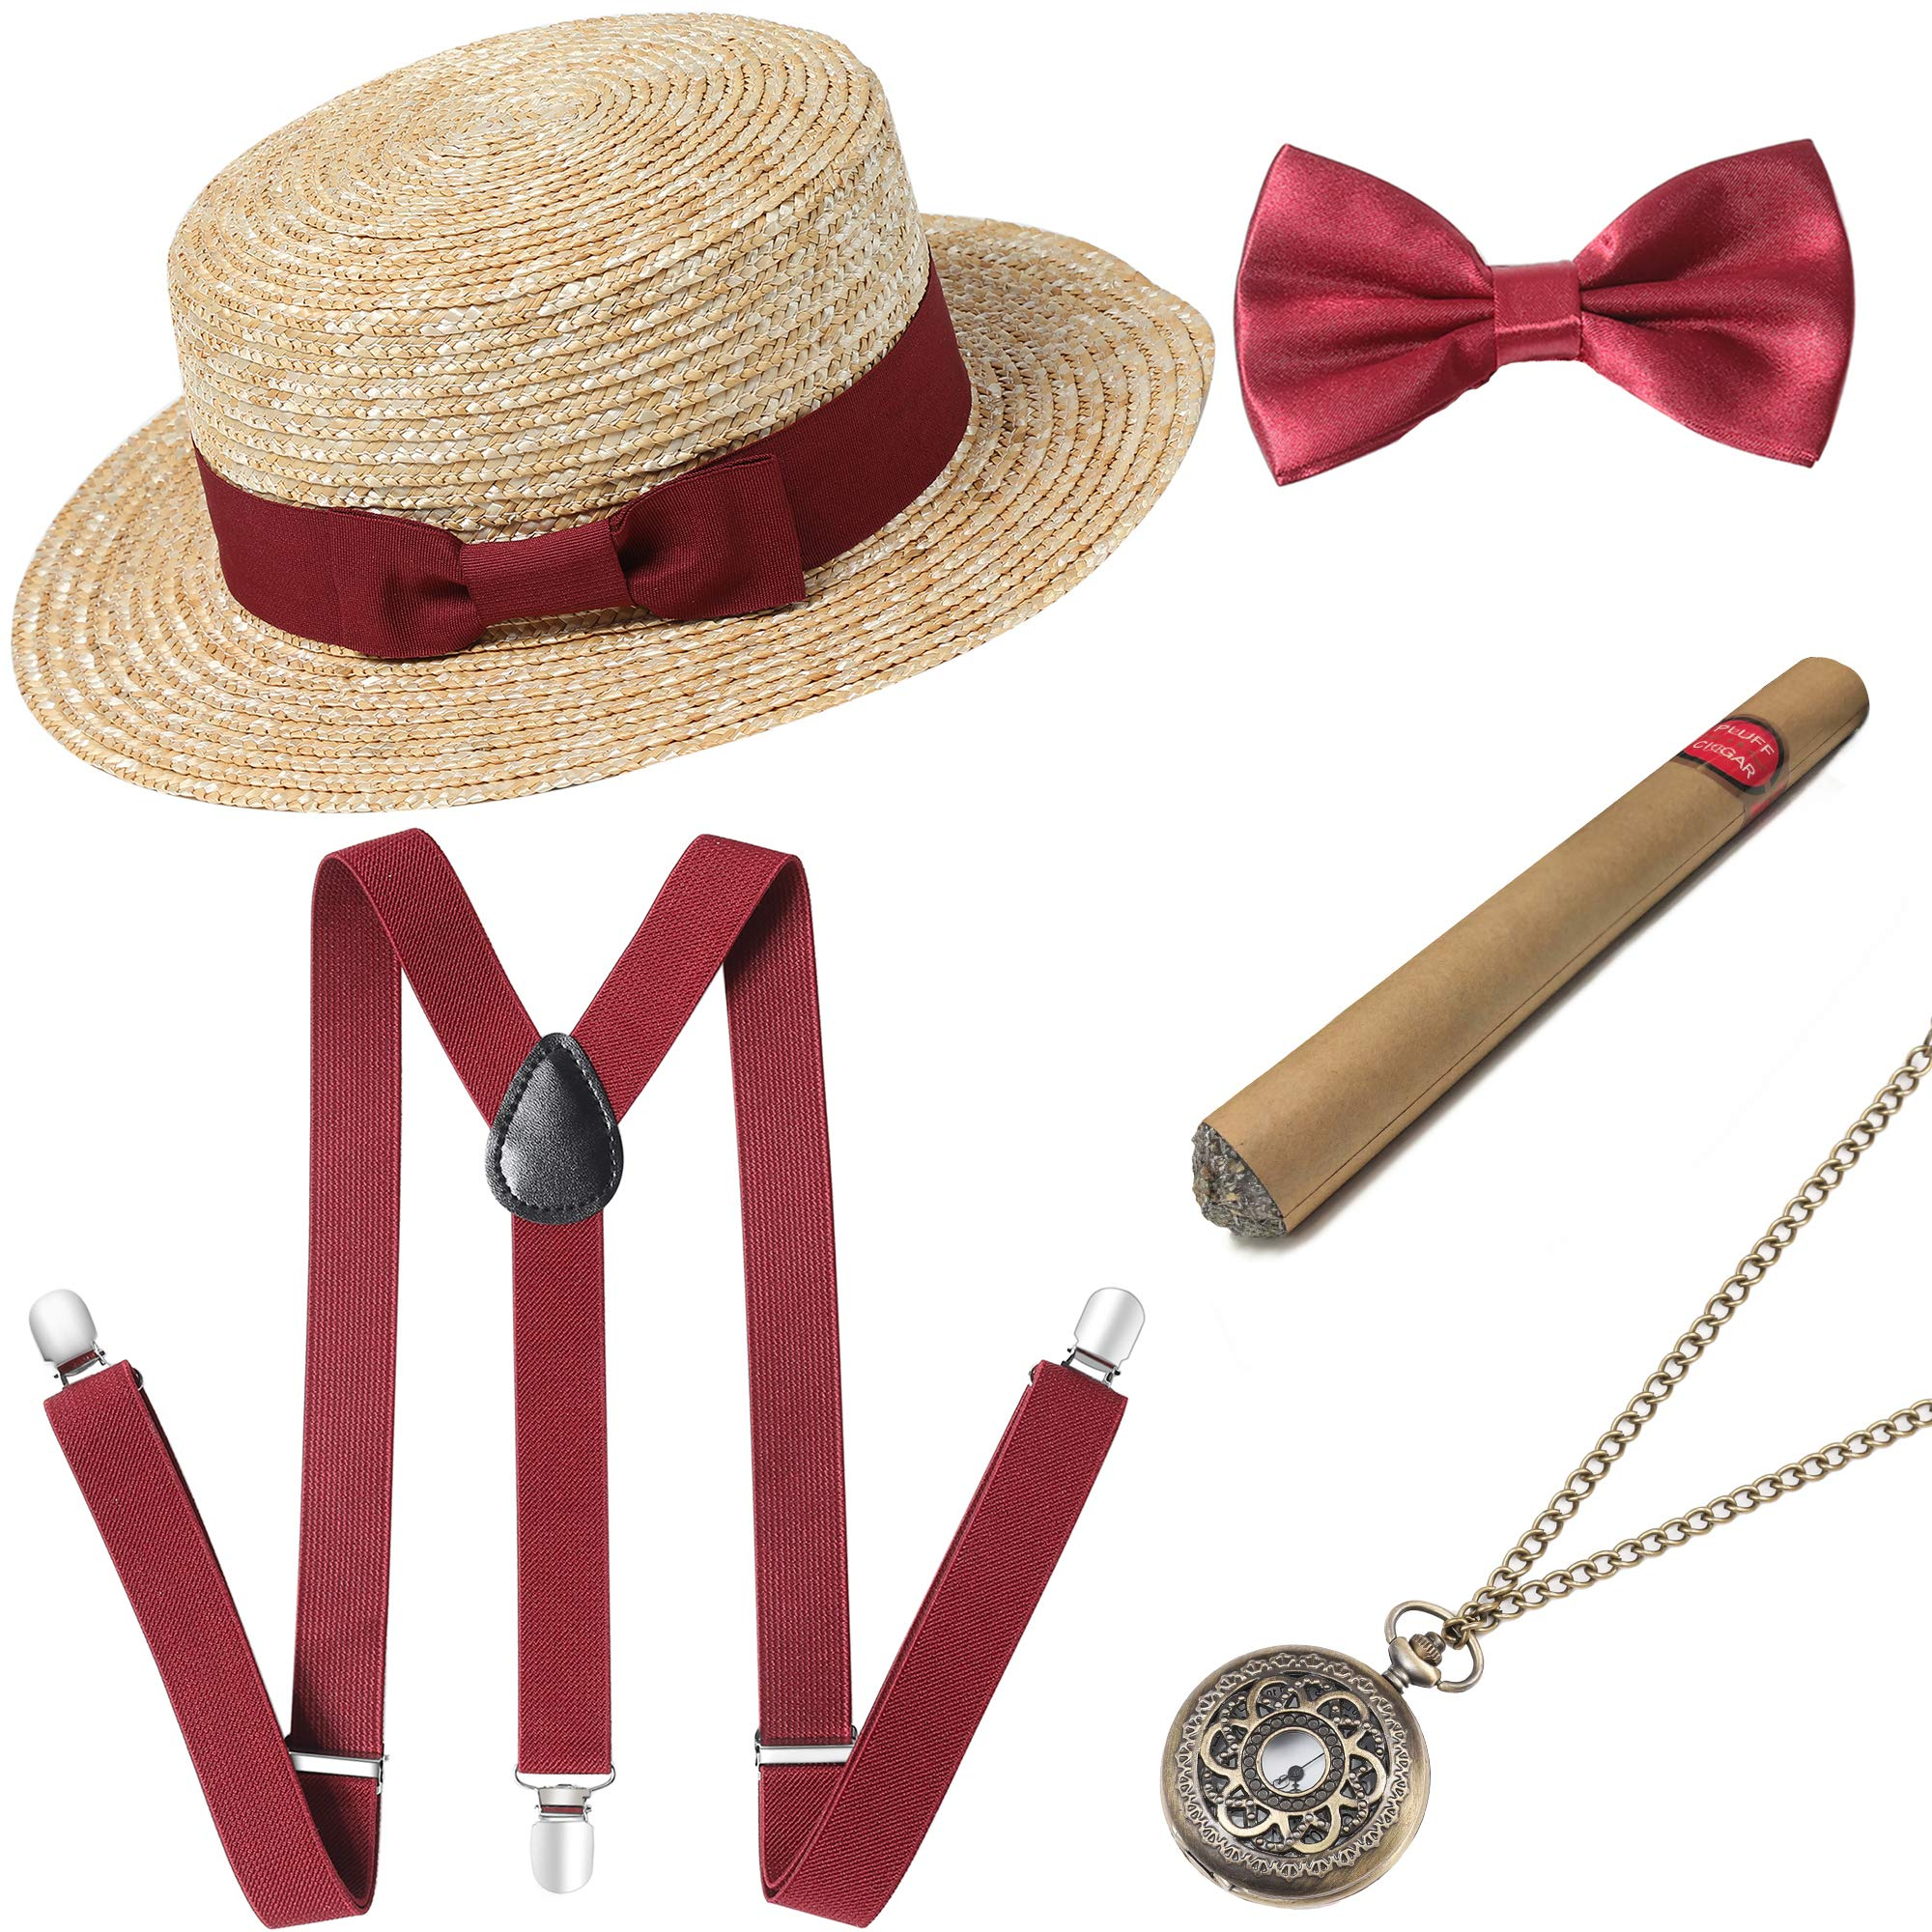 BABEYOND 1920s Mens Gatsby Costume Accessories Set Includes Brim Boater Hat Elastic Y-Back Suspender Pre Tied Bow Tie Pocket Watch and Plastic Cigar (Set-4) by BABEYOND